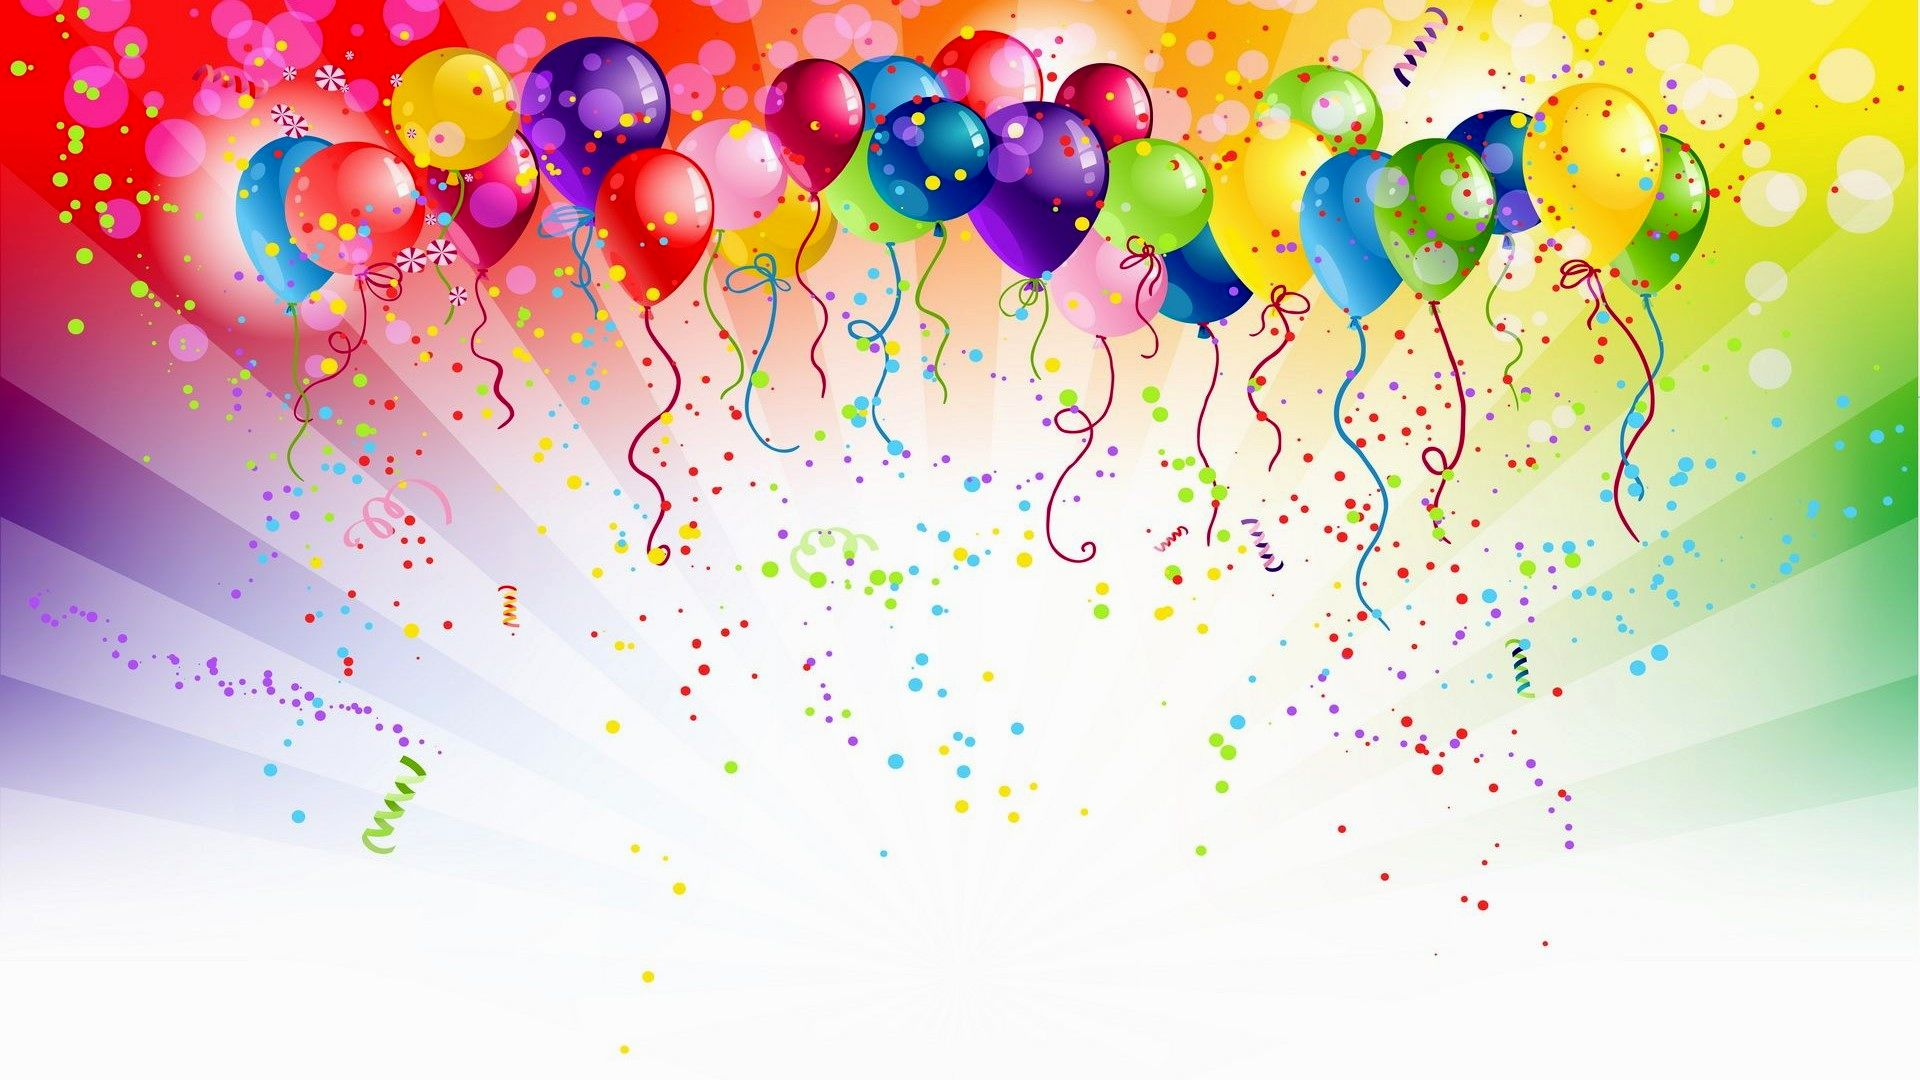 cool birthday wallpapers ; cool-cool-birthday-wishes-wallpaper-latest-cool-birthday-wishes-plan